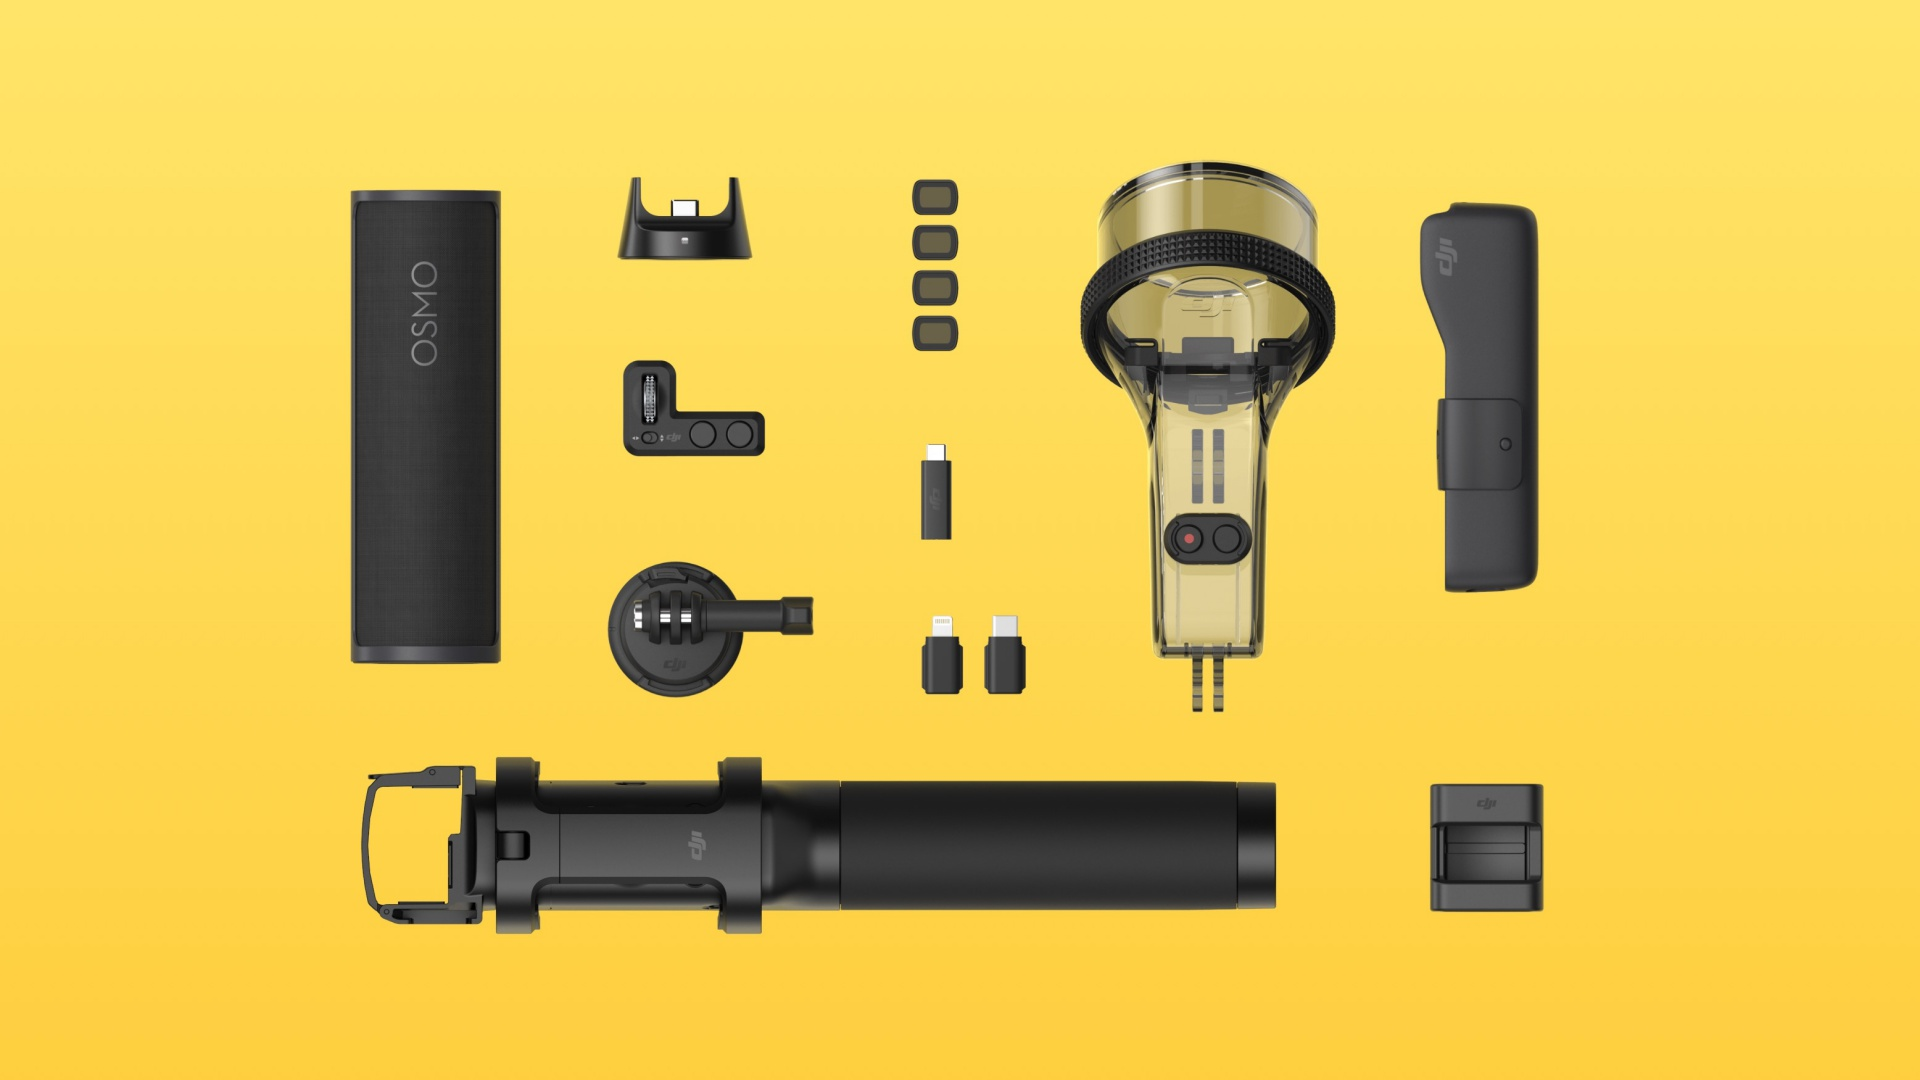 DJI Osmo Pocket accessories are back in stock